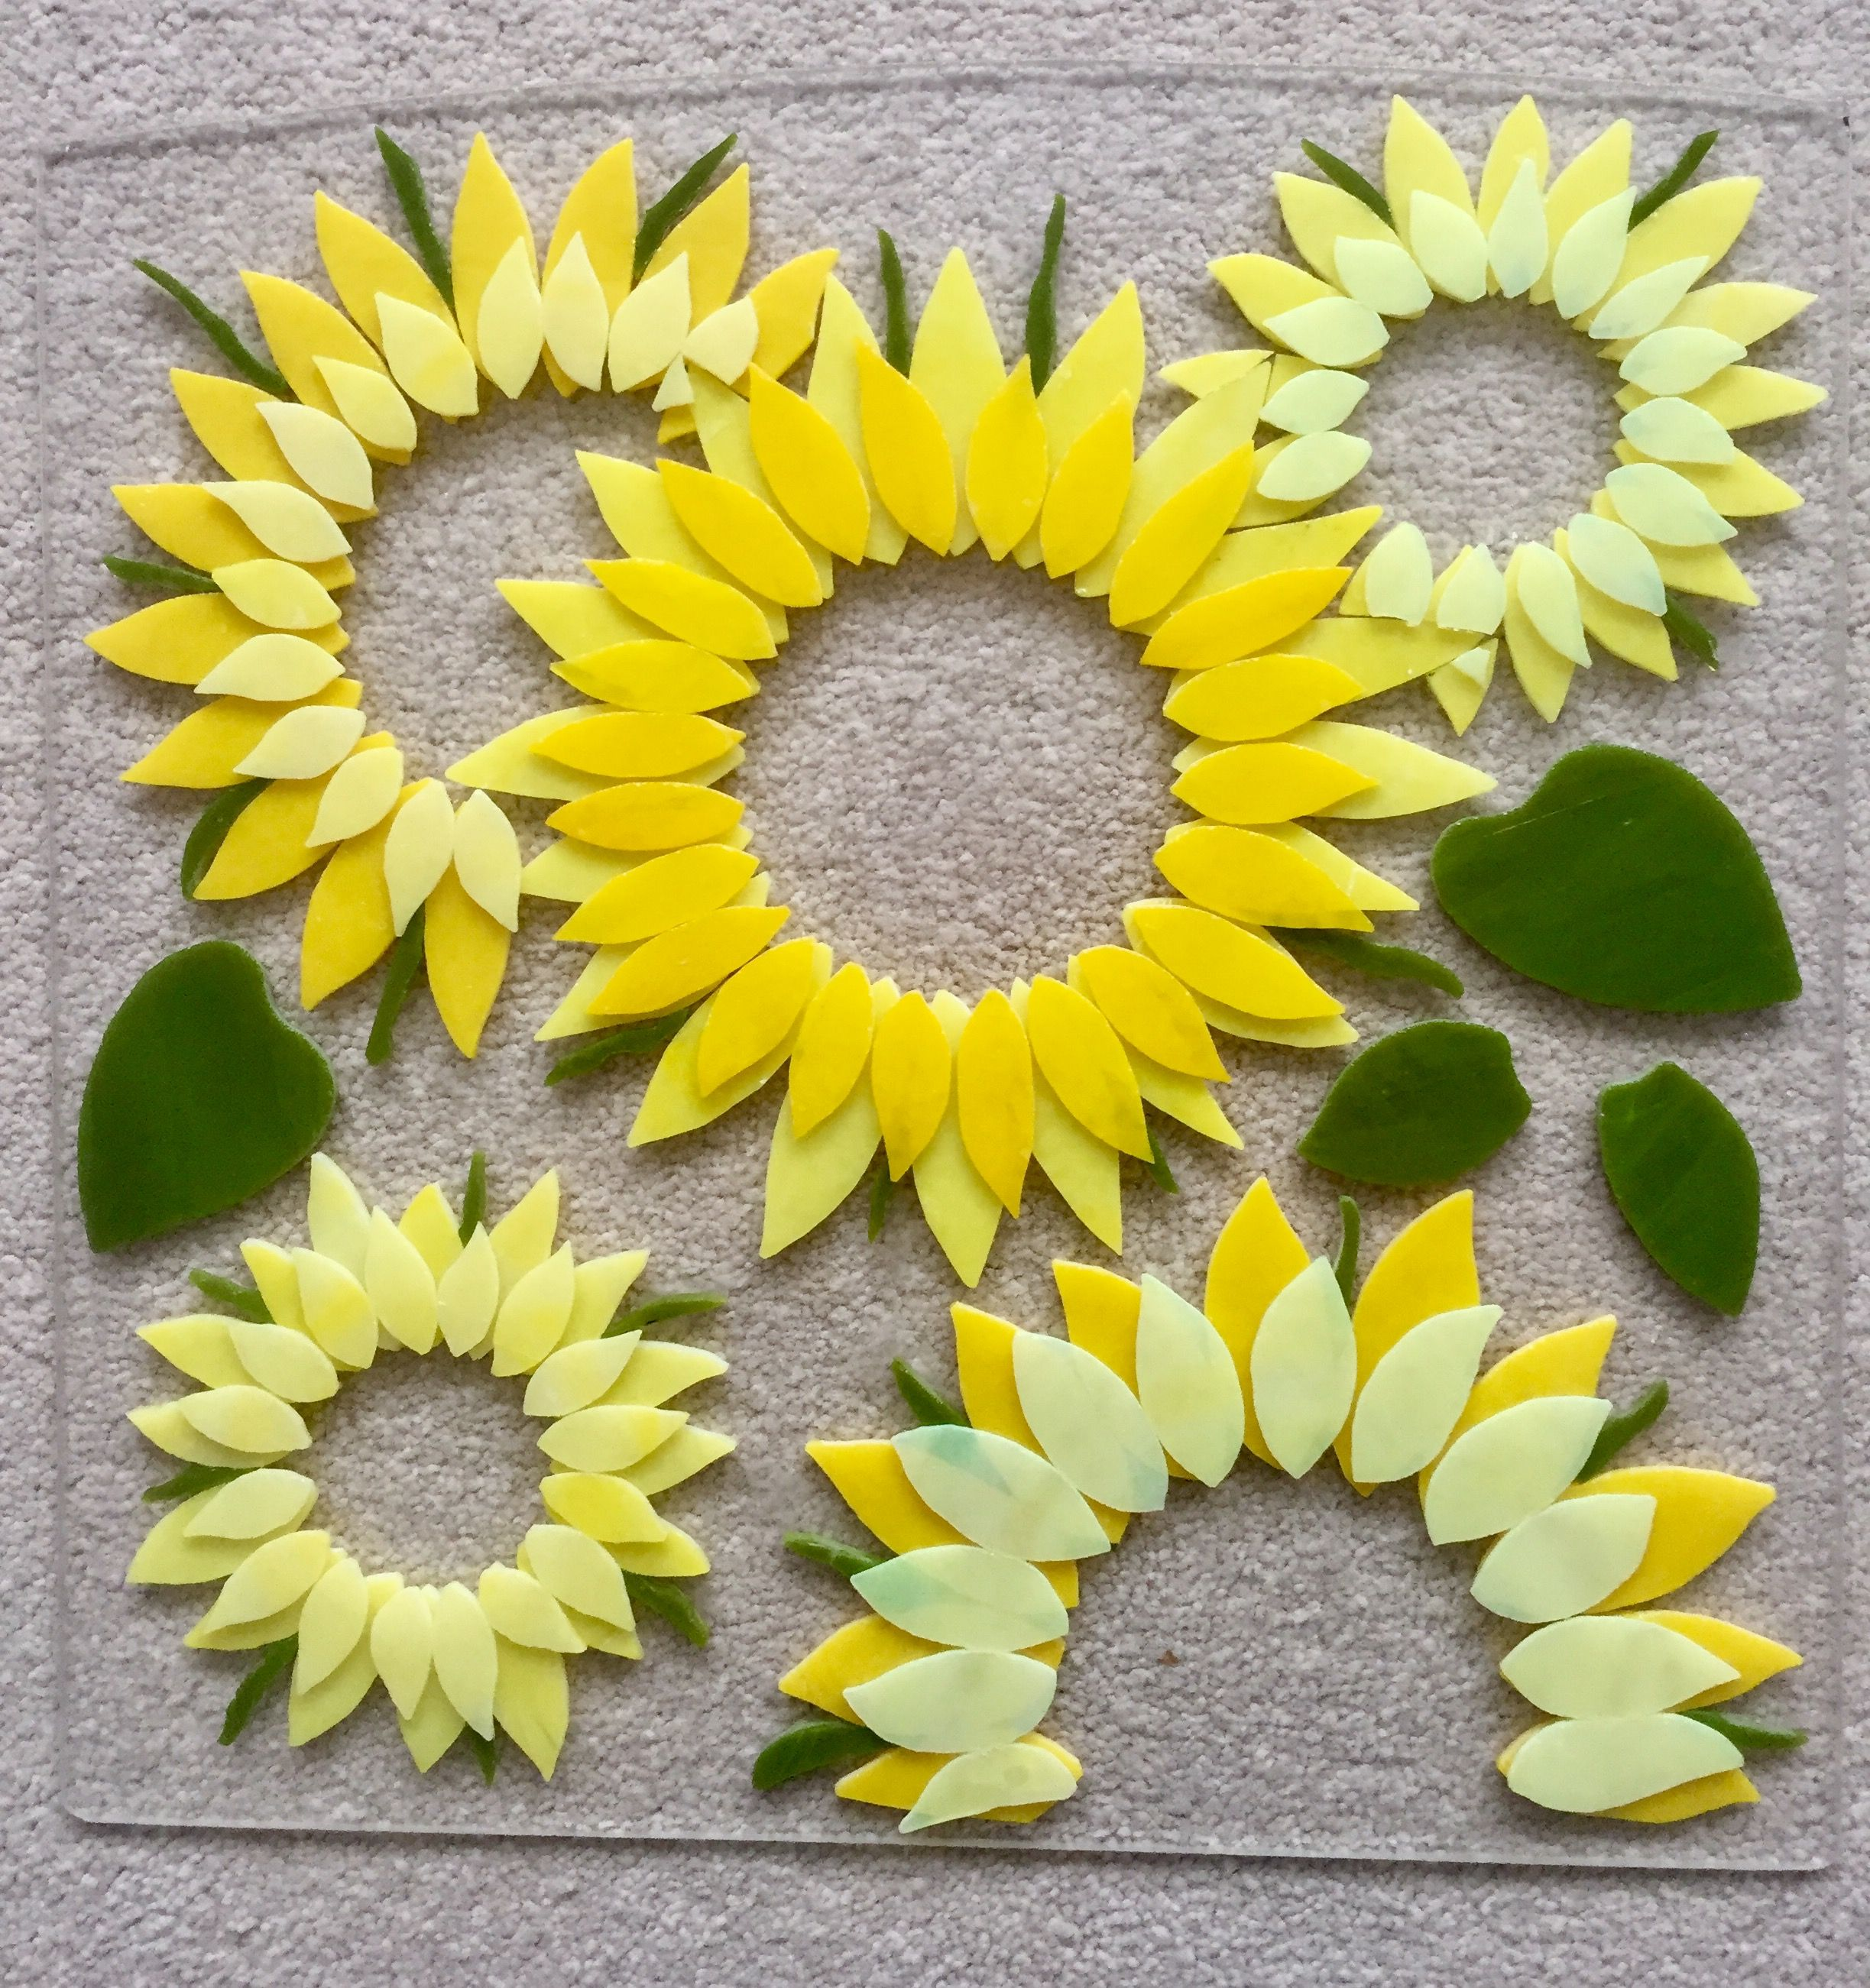 Fused glass - sunflowers how to | I LOVE GLASS!! | Pinterest ...